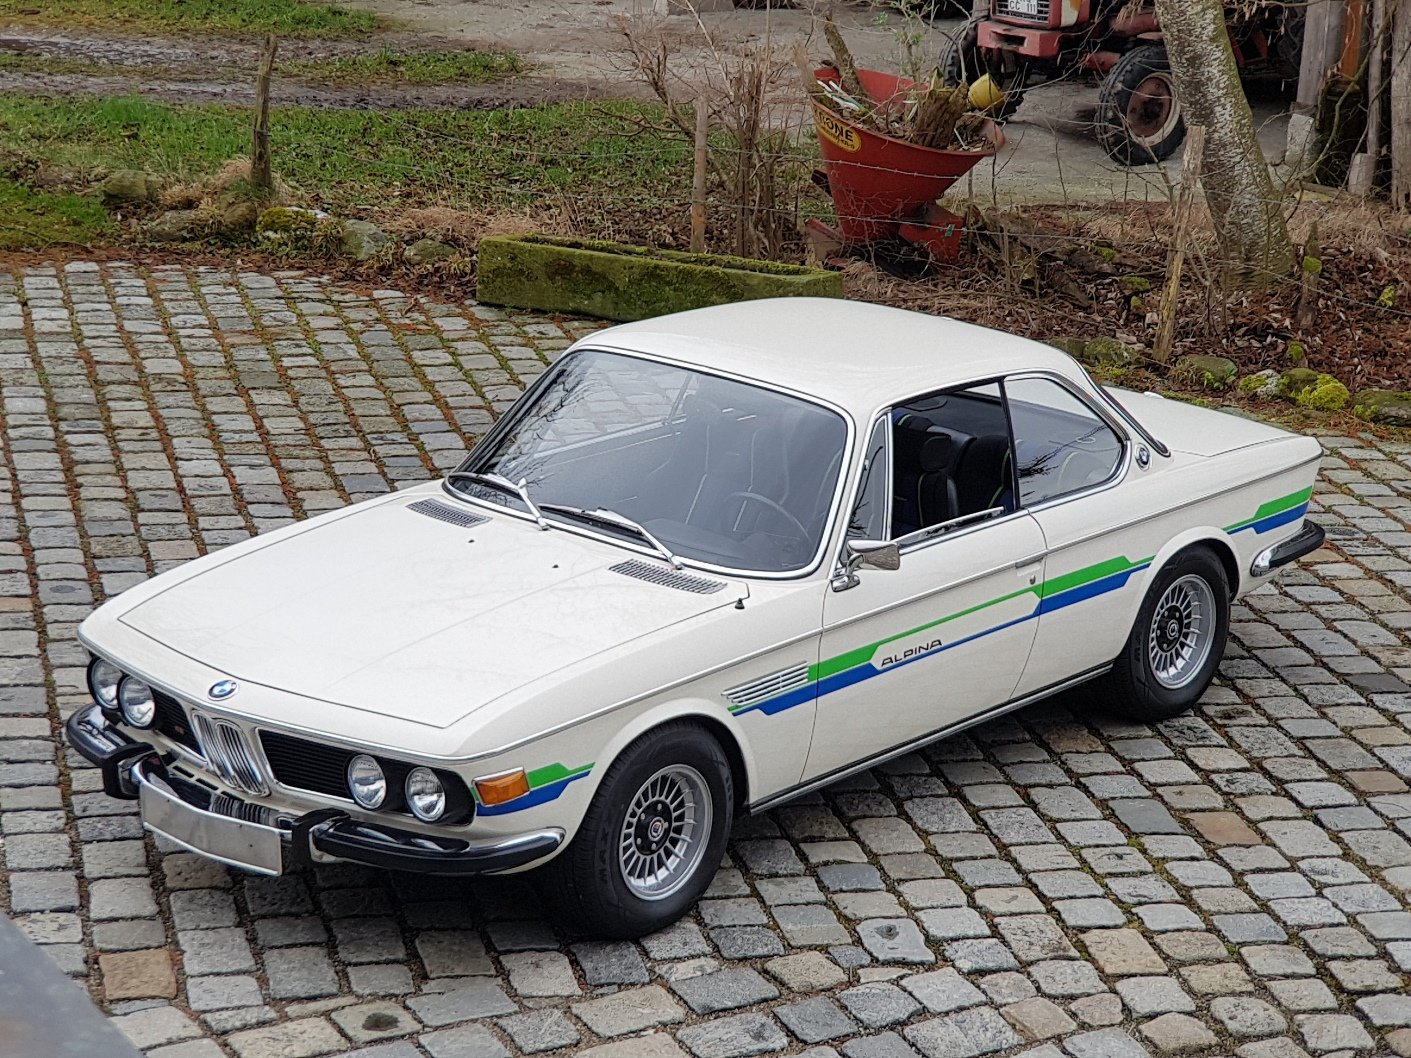 1972 ALPINA B2 3.0 Coupé, 21 years with first owner For Sale (picture 1 of 6)